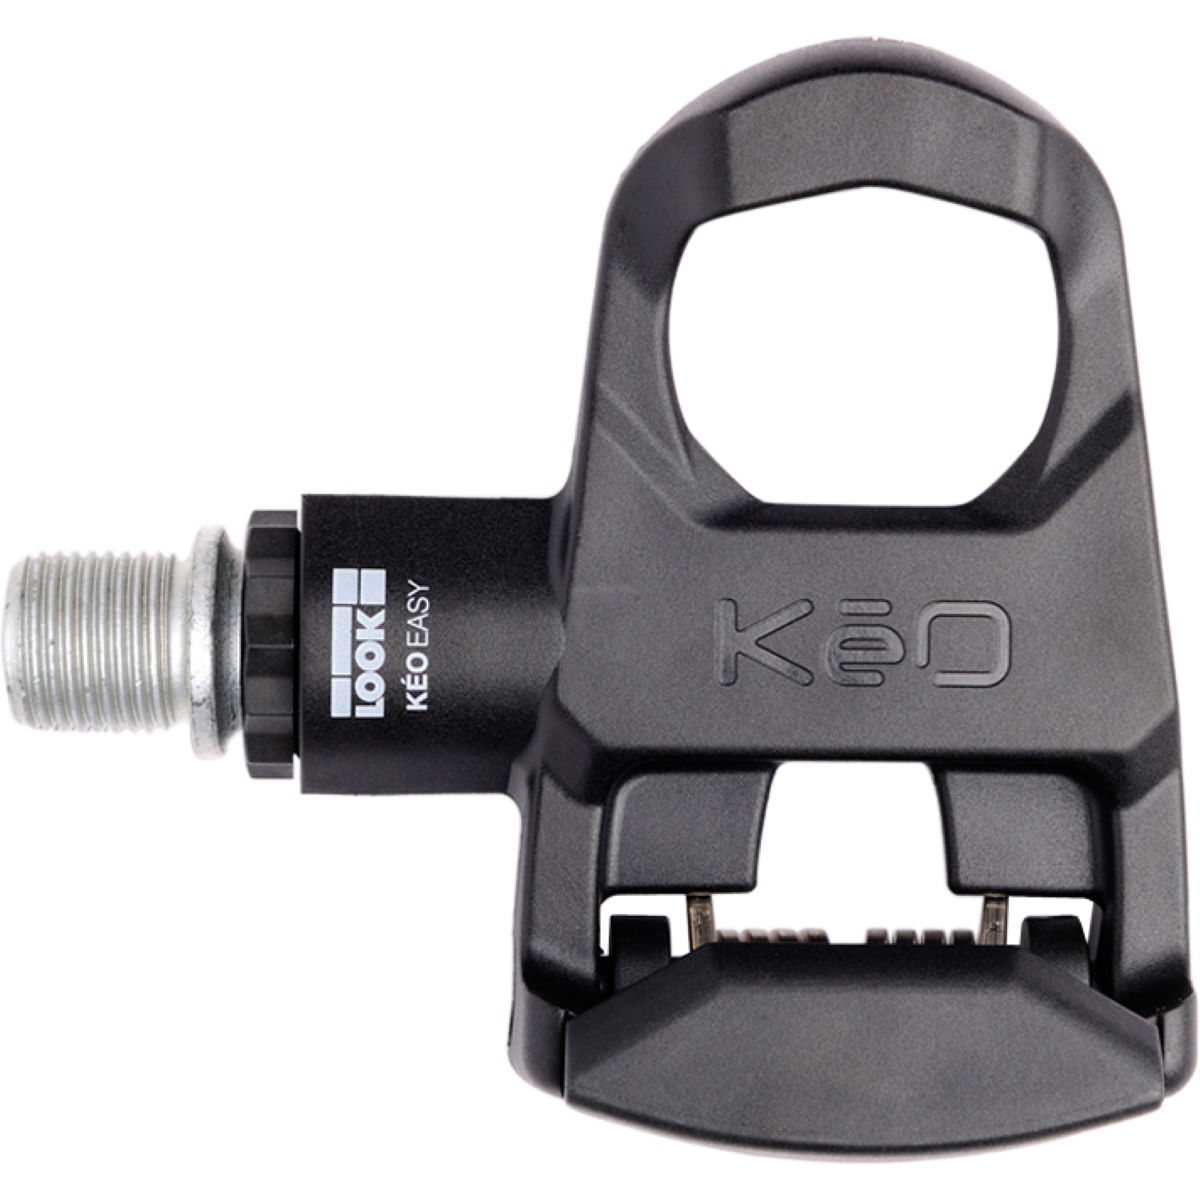 Look Look Keo Easy Pedals (2016)   Clip-in Pedals